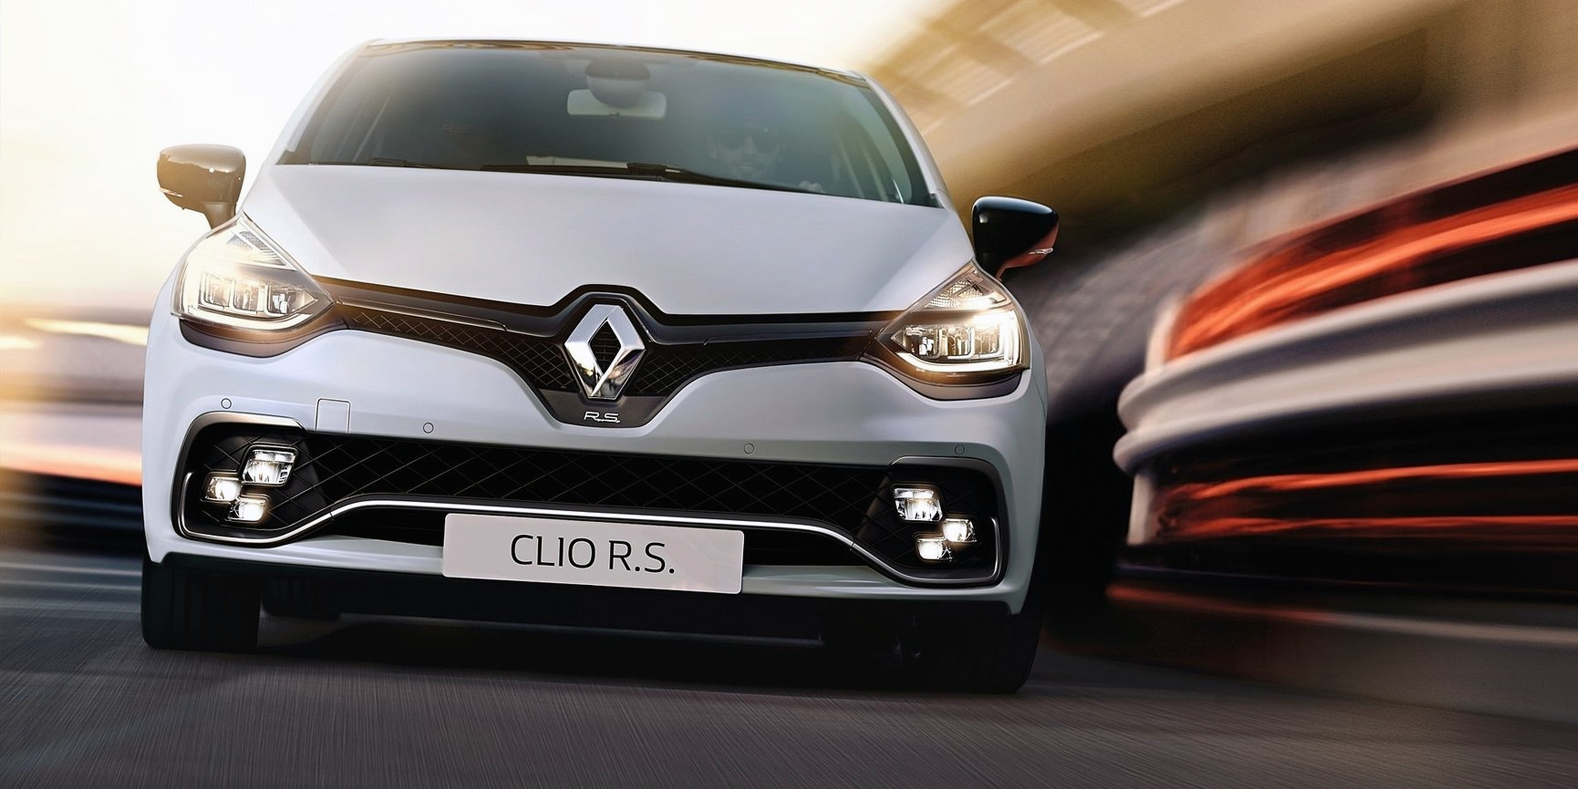 2018 renault clio rs pricing and specs new looks more kit photos caradvice. Black Bedroom Furniture Sets. Home Design Ideas